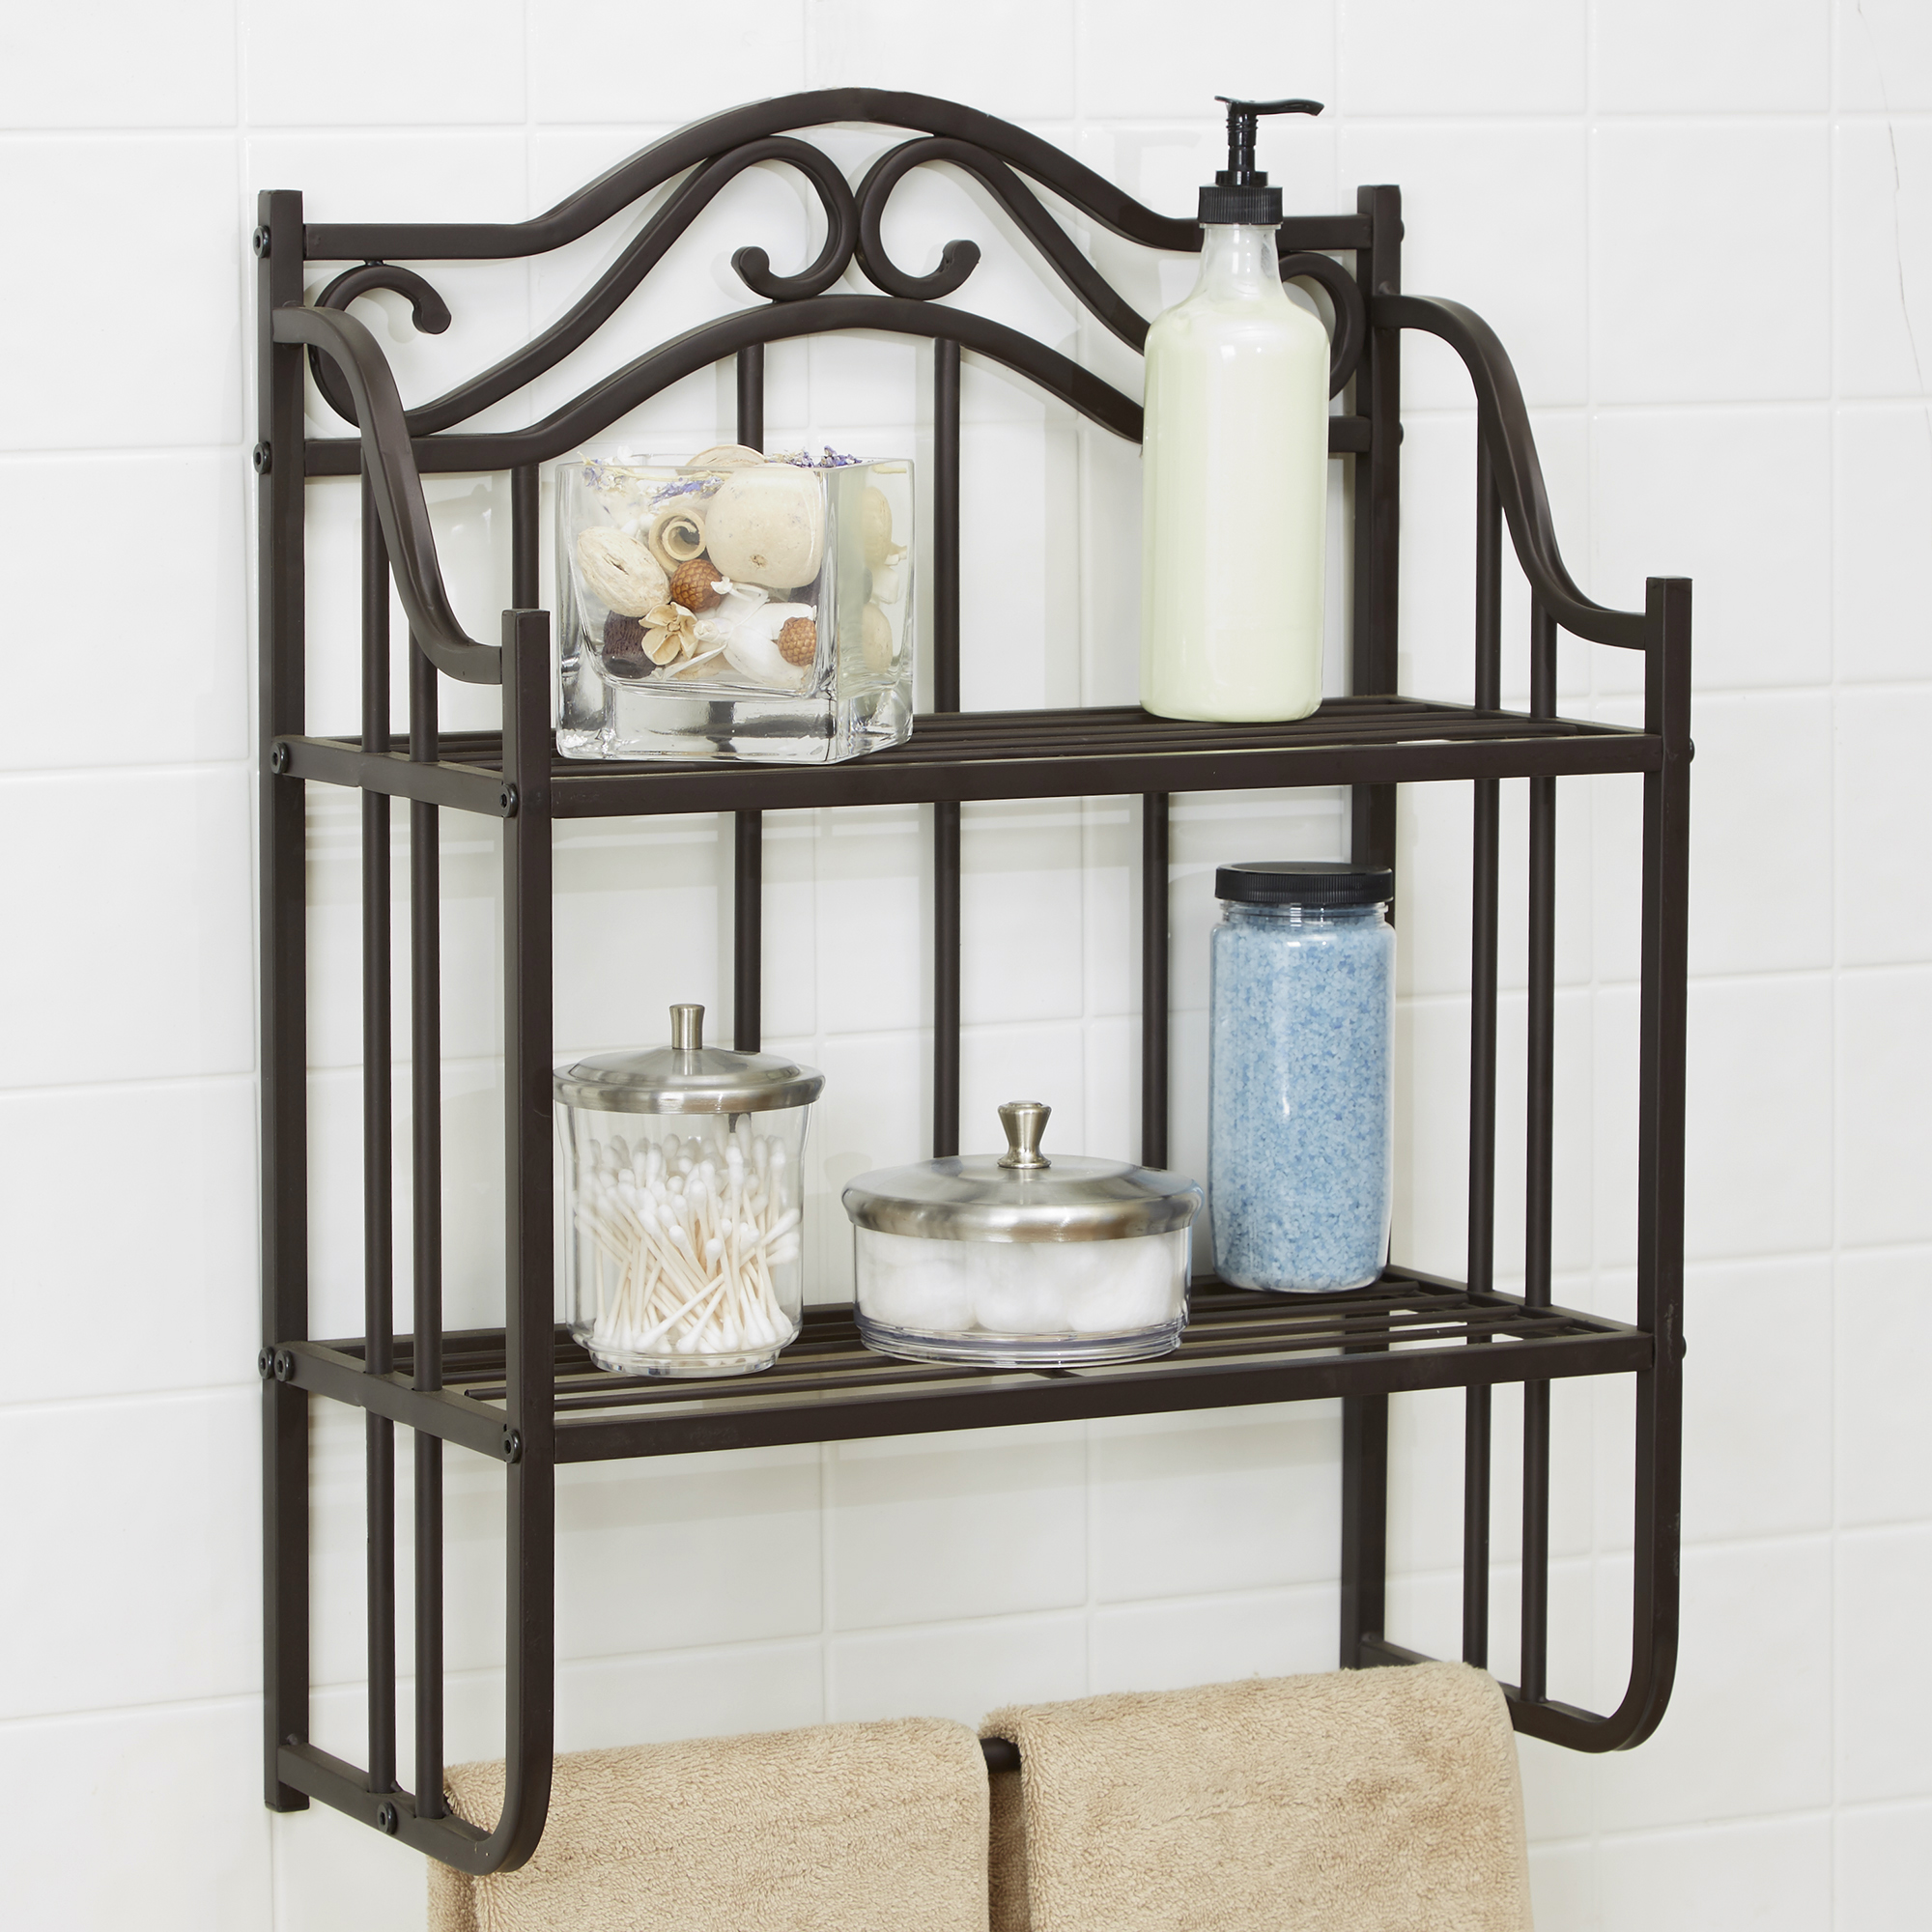 Chapter Bathroom Storage Wall Shelf Oil Rubbed Bronze Organizer ...